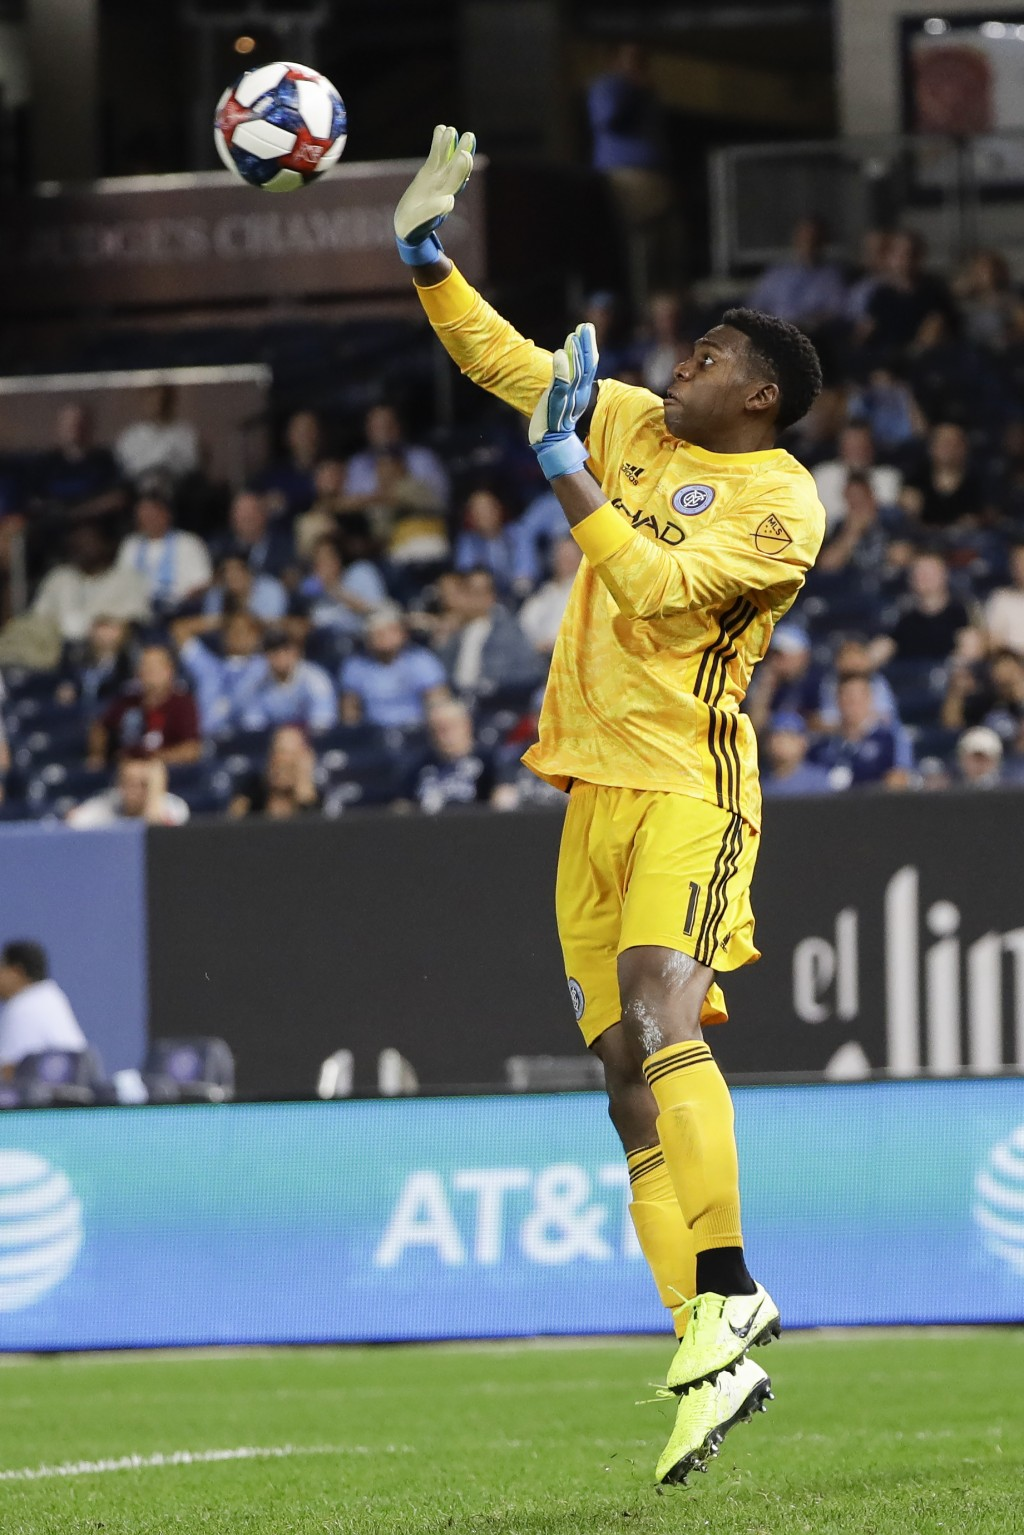 New York City FC goalkeeper Sean Johnson deflects a shot on the goal during the second half of an MLS soccer match against Toronto FC Wednesday, Sept.